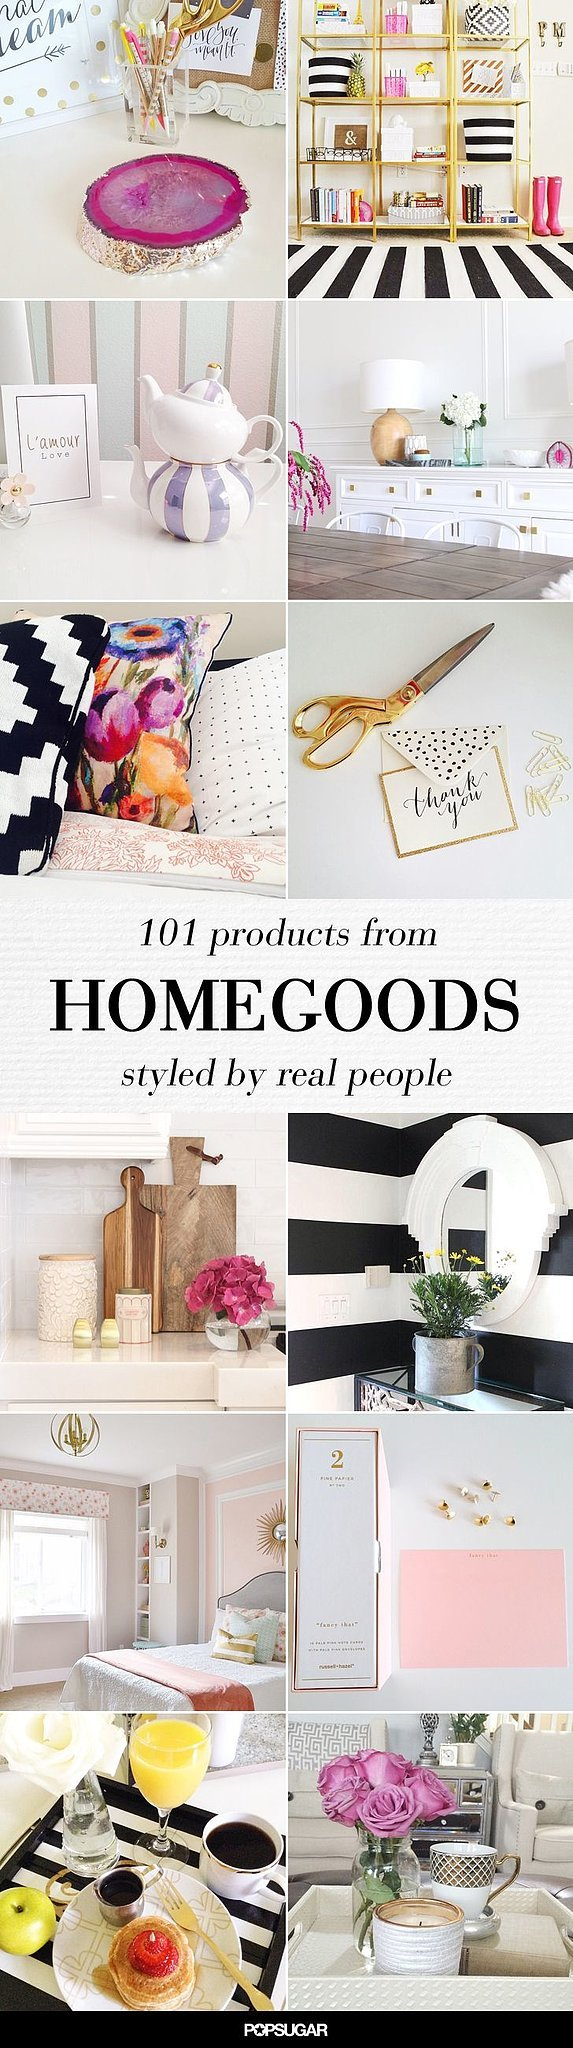 Amazing homegoods pieces 10 home decor ideas you 39 ll want for Home goods decor